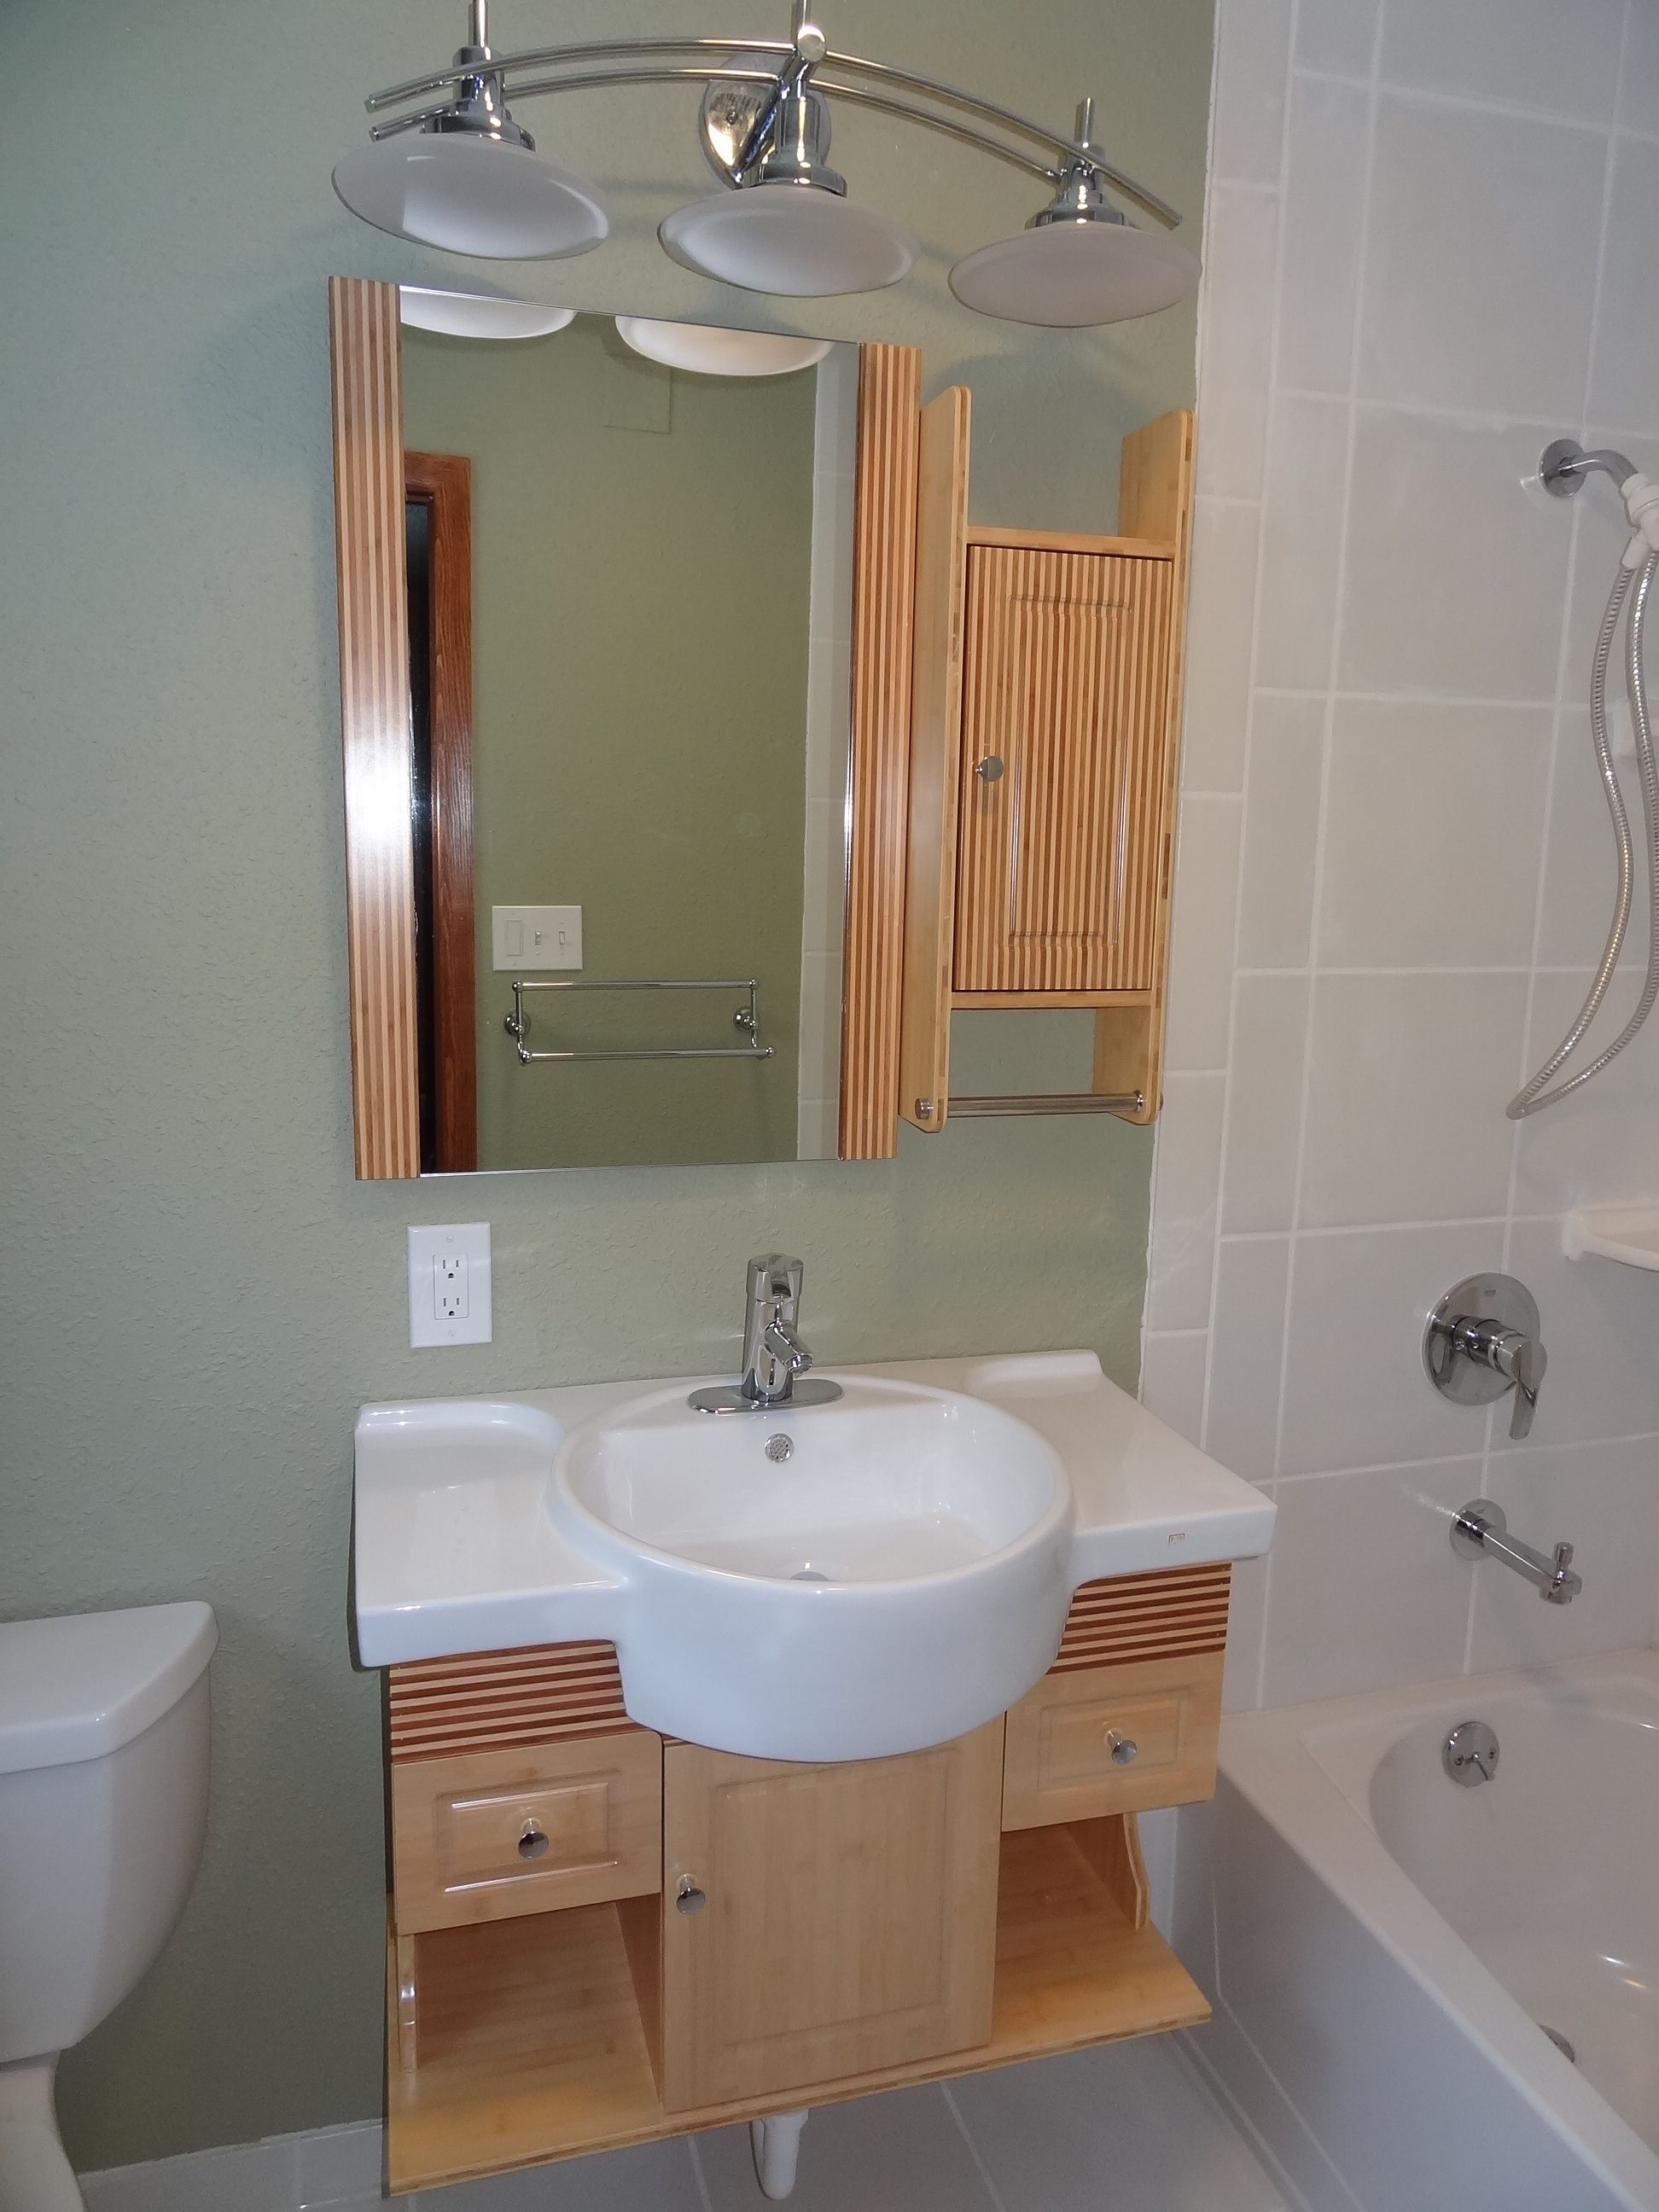 Photo Gallery For Website Remodel of a X u bathroom